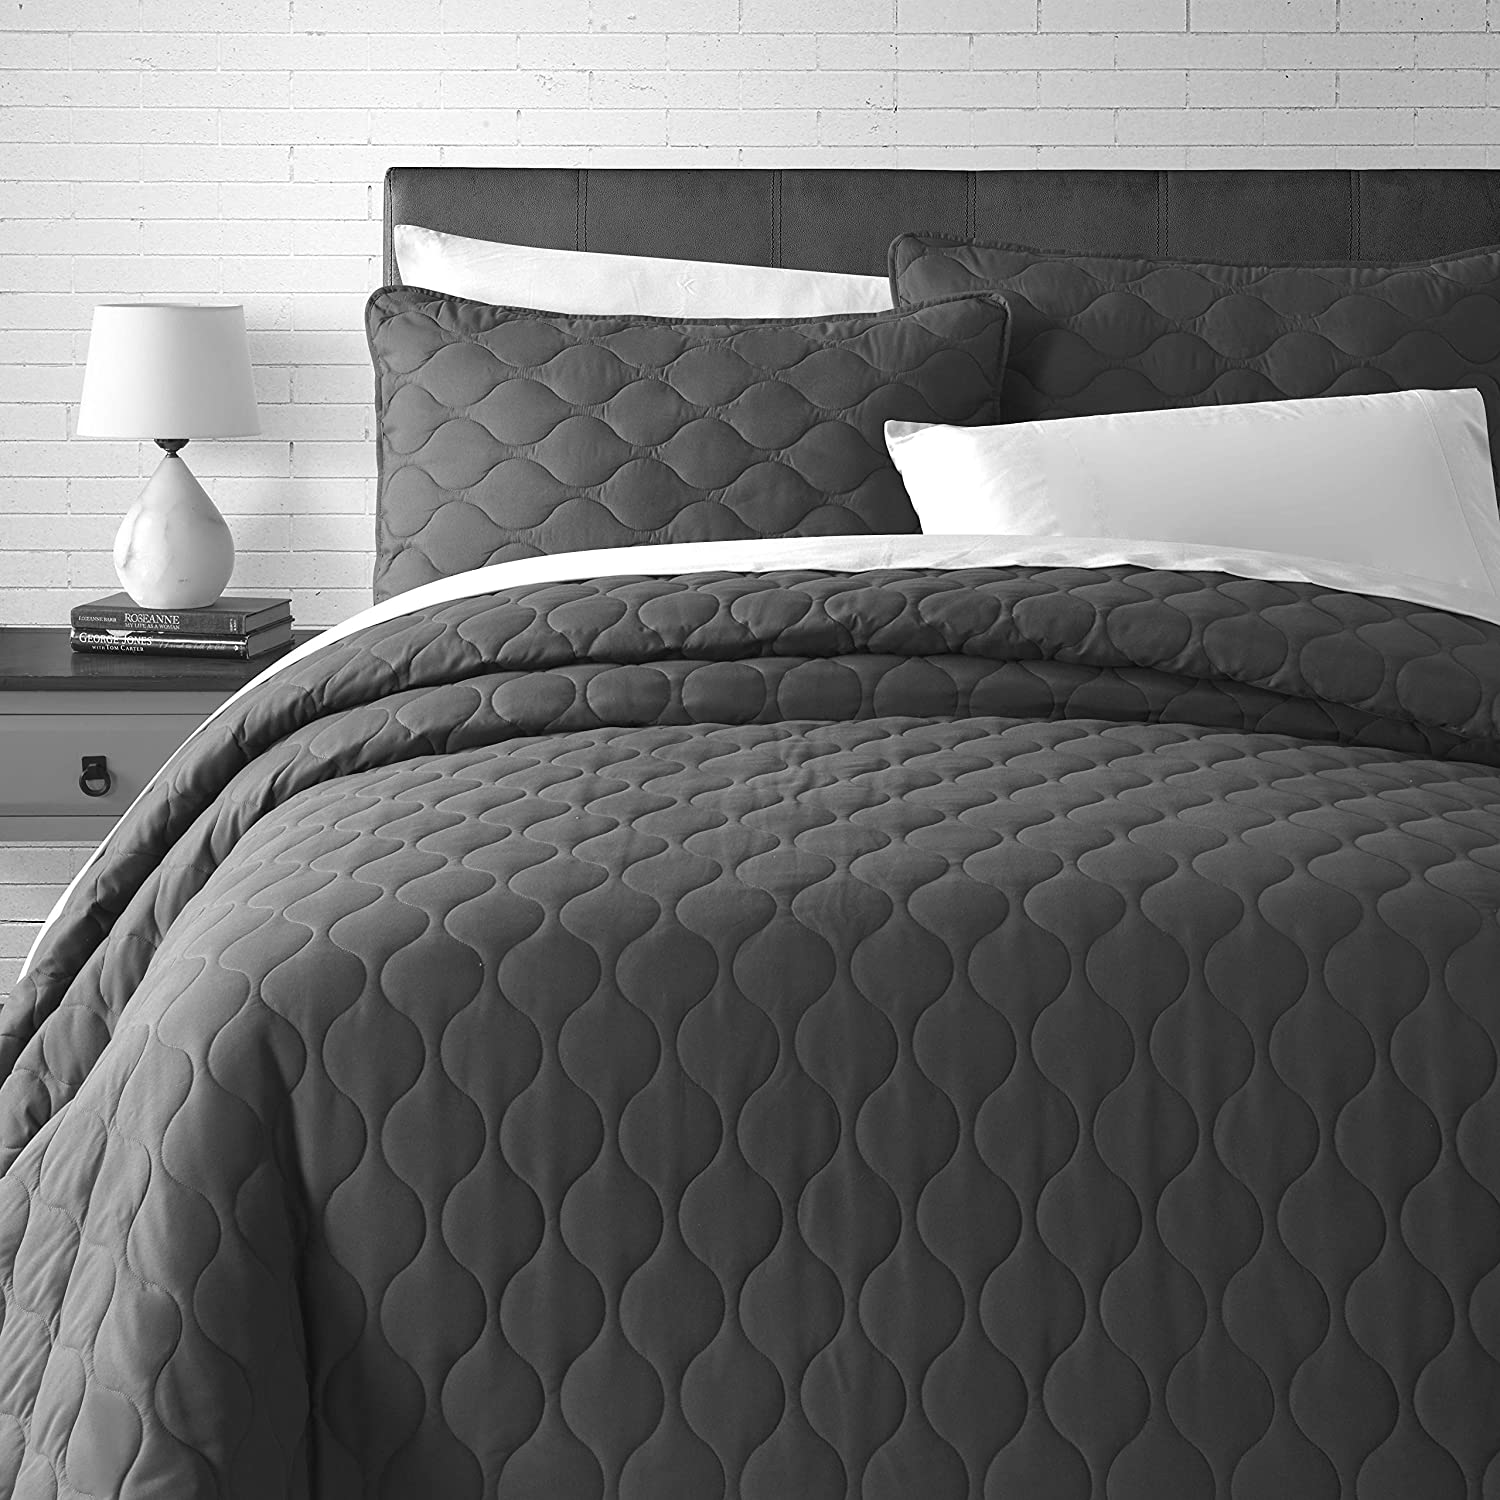 Grey, King//Cal King Comfy Bedding Modern Pearl Necklace Pattern Quilted 3-Piece Bedspread Coverlet Set